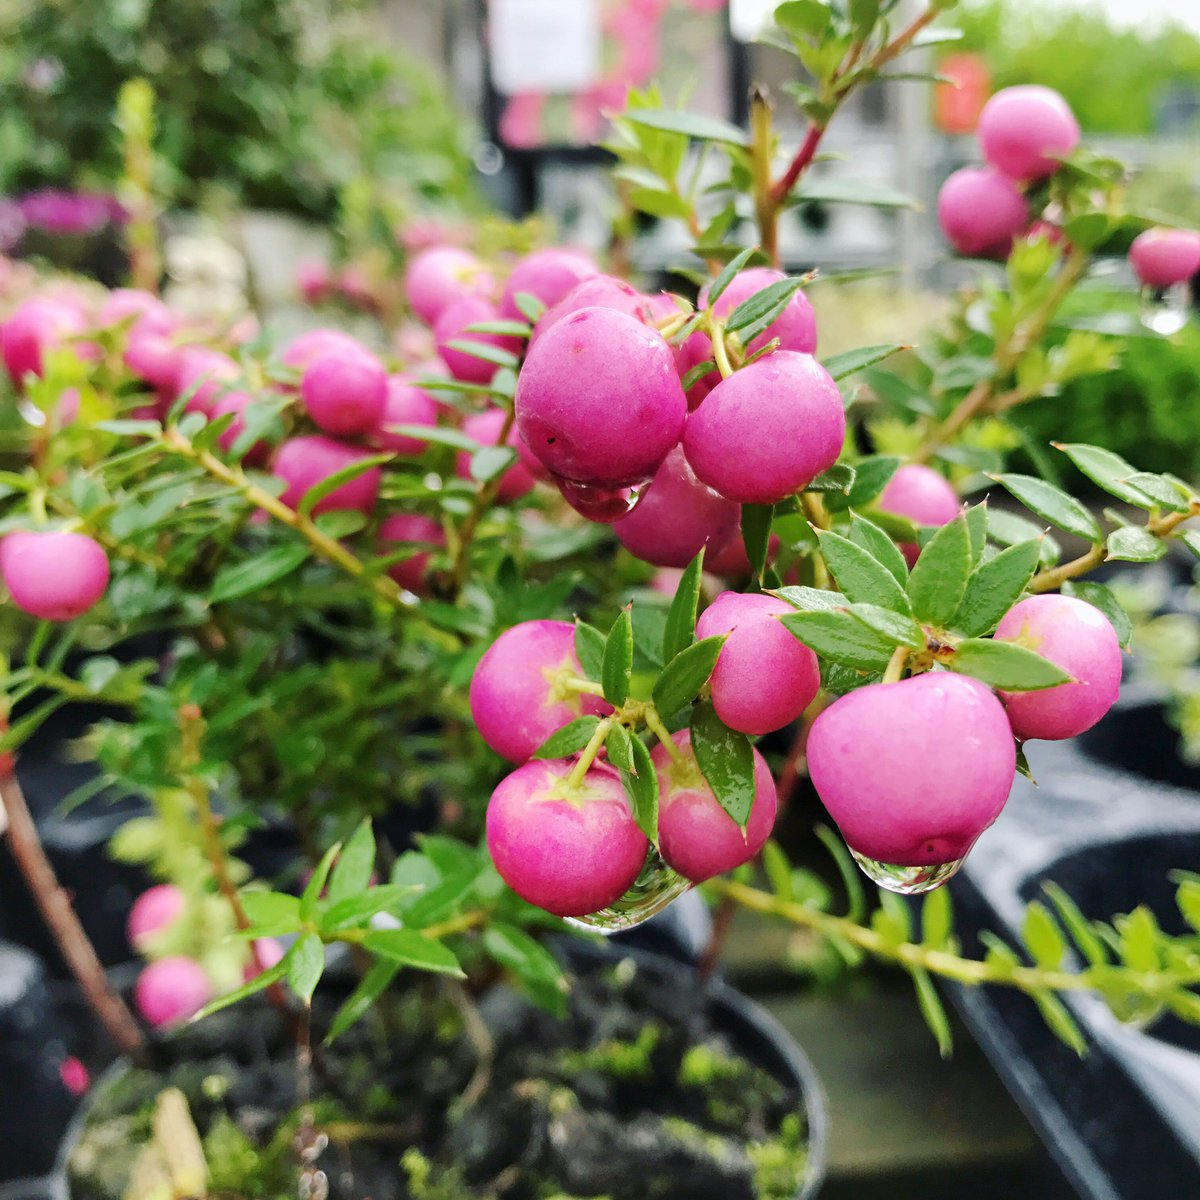 Pernettya Pink.Silverbirch Garden Centre On Twitter Pretty Pernettya The Female Variety Of This Evergreen Shrub Sports Beautiful Pink Berries In Winter Pernettya Pink Evergreen Https T Co Ebpn6iunsx